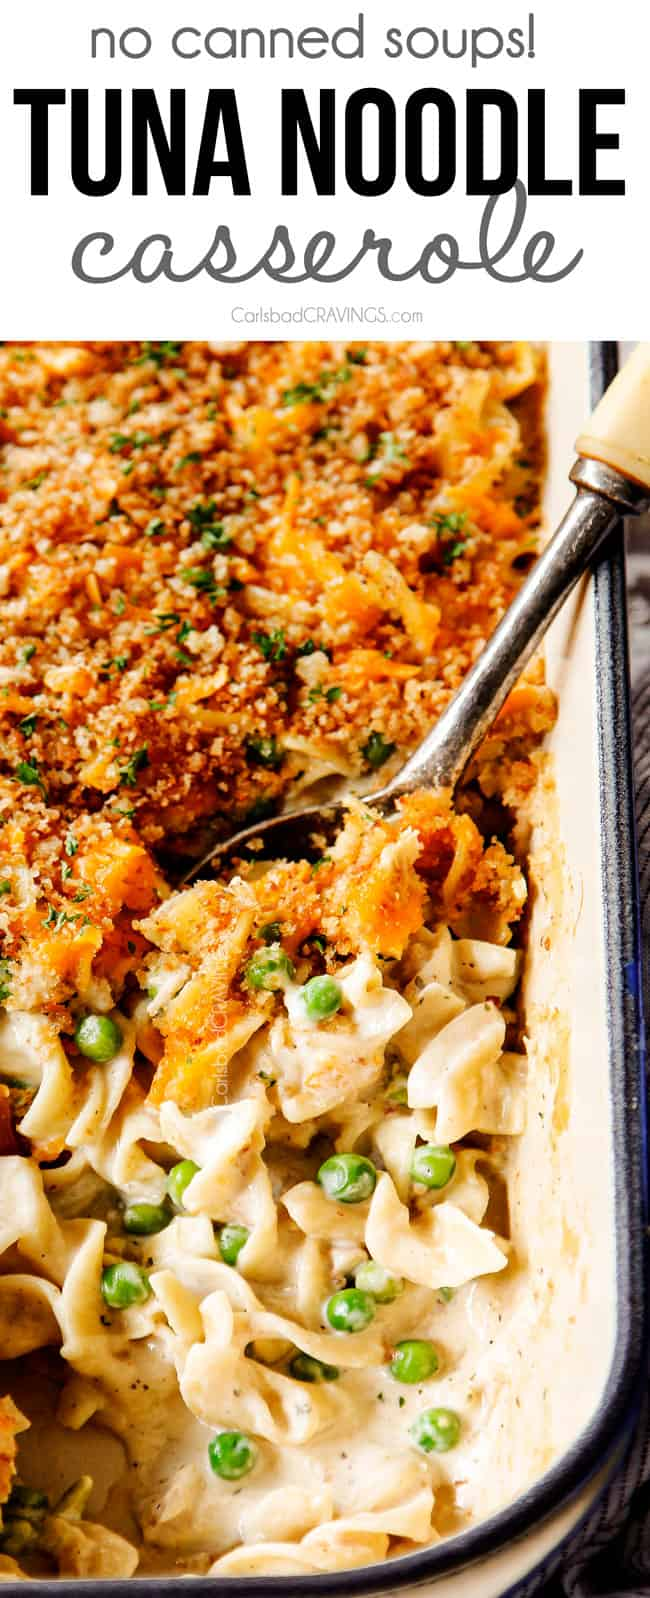 up close of a spoon scooping tuna noodle casserole to show how creamy it is